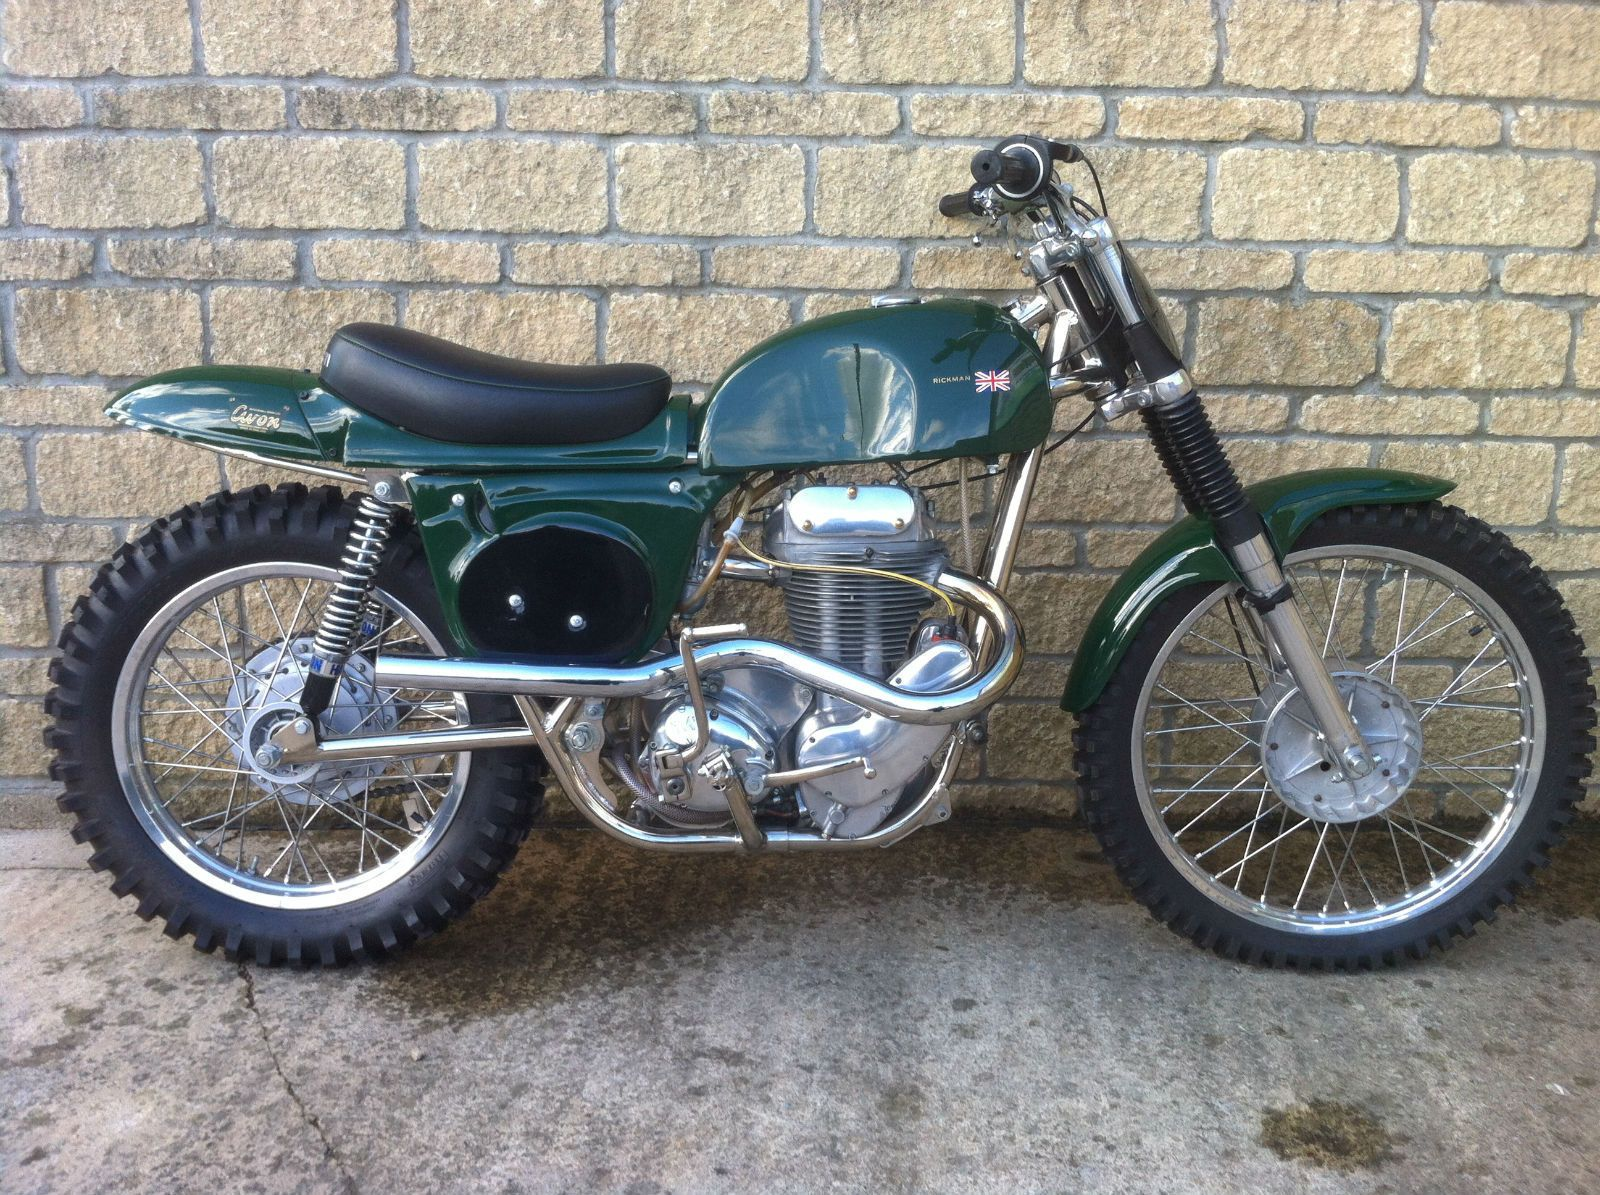 Matchless g 11 csr for sale 1958 on car and classic uk c544589 - Matchless G 11 Csr For Sale 1958 On Car And Classic Uk C544589 8